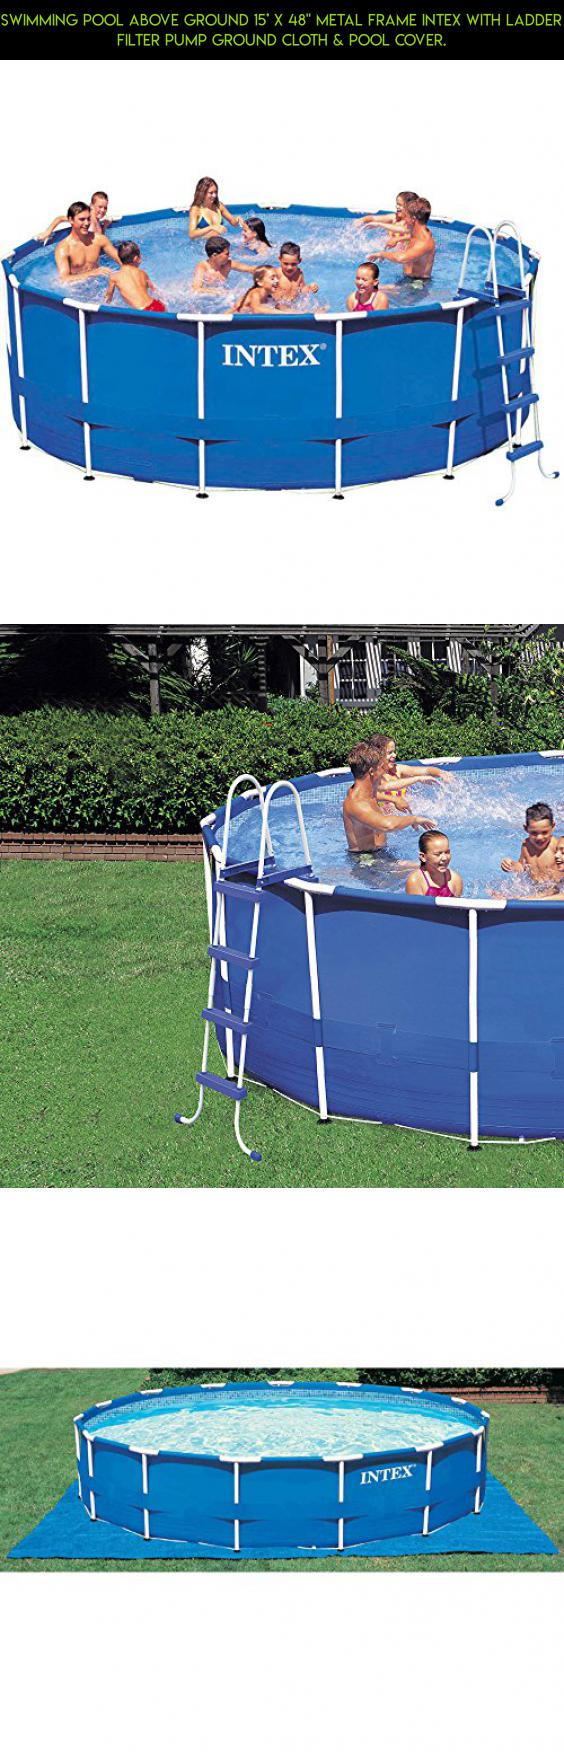 Swimming Pool Above Ground 15\' x 48\